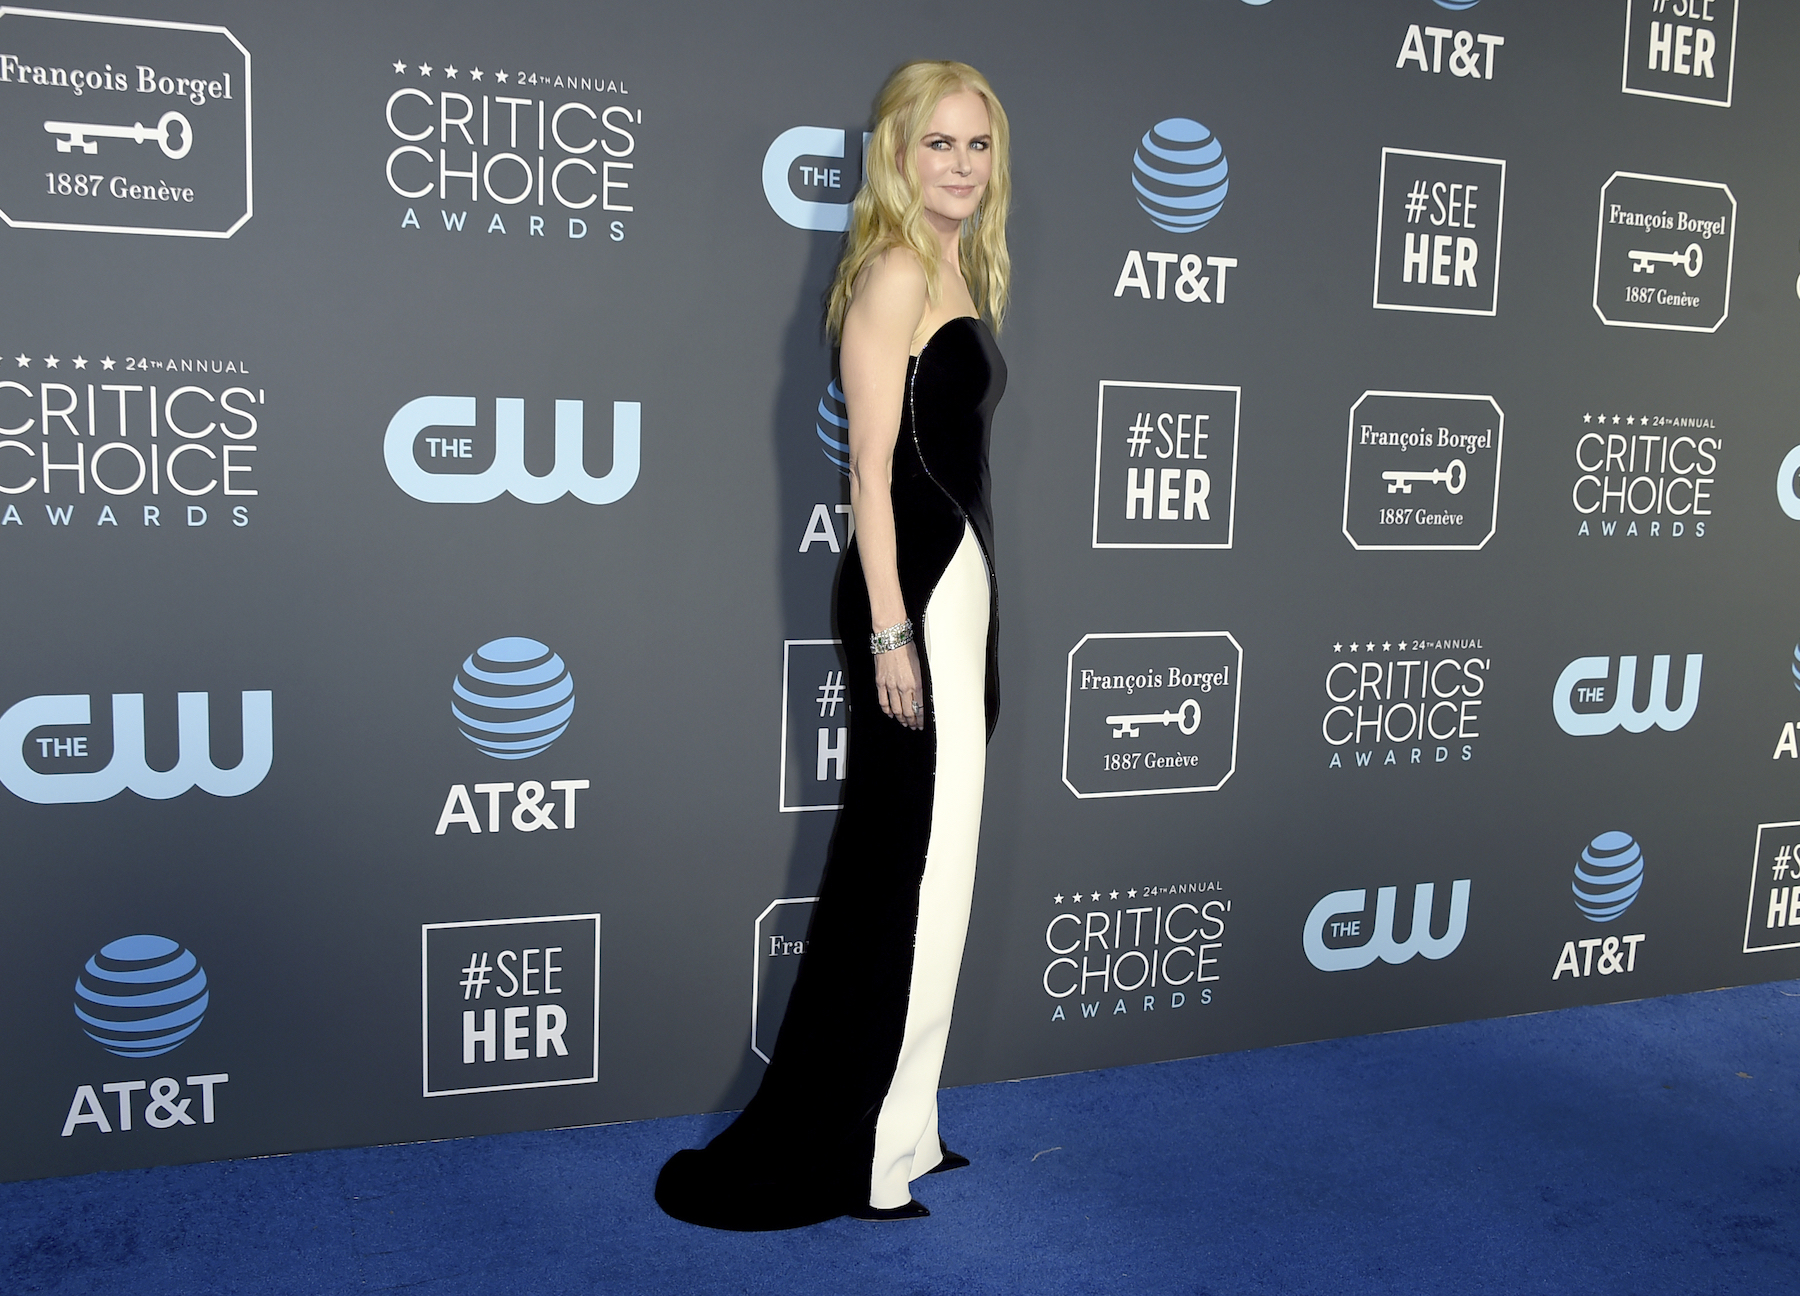 "<div class=""meta image-caption""><div class=""origin-logo origin-image ap""><span>AP</span></div><span class=""caption-text"">Nicole Kidman arrives at the 24th annual Critics' Choice Awards on Sunday, Jan. 13, 2019, at the Barker Hangar in Santa Monica, Calif. (Jordan Strauss/Invision/AP)</span></div>"